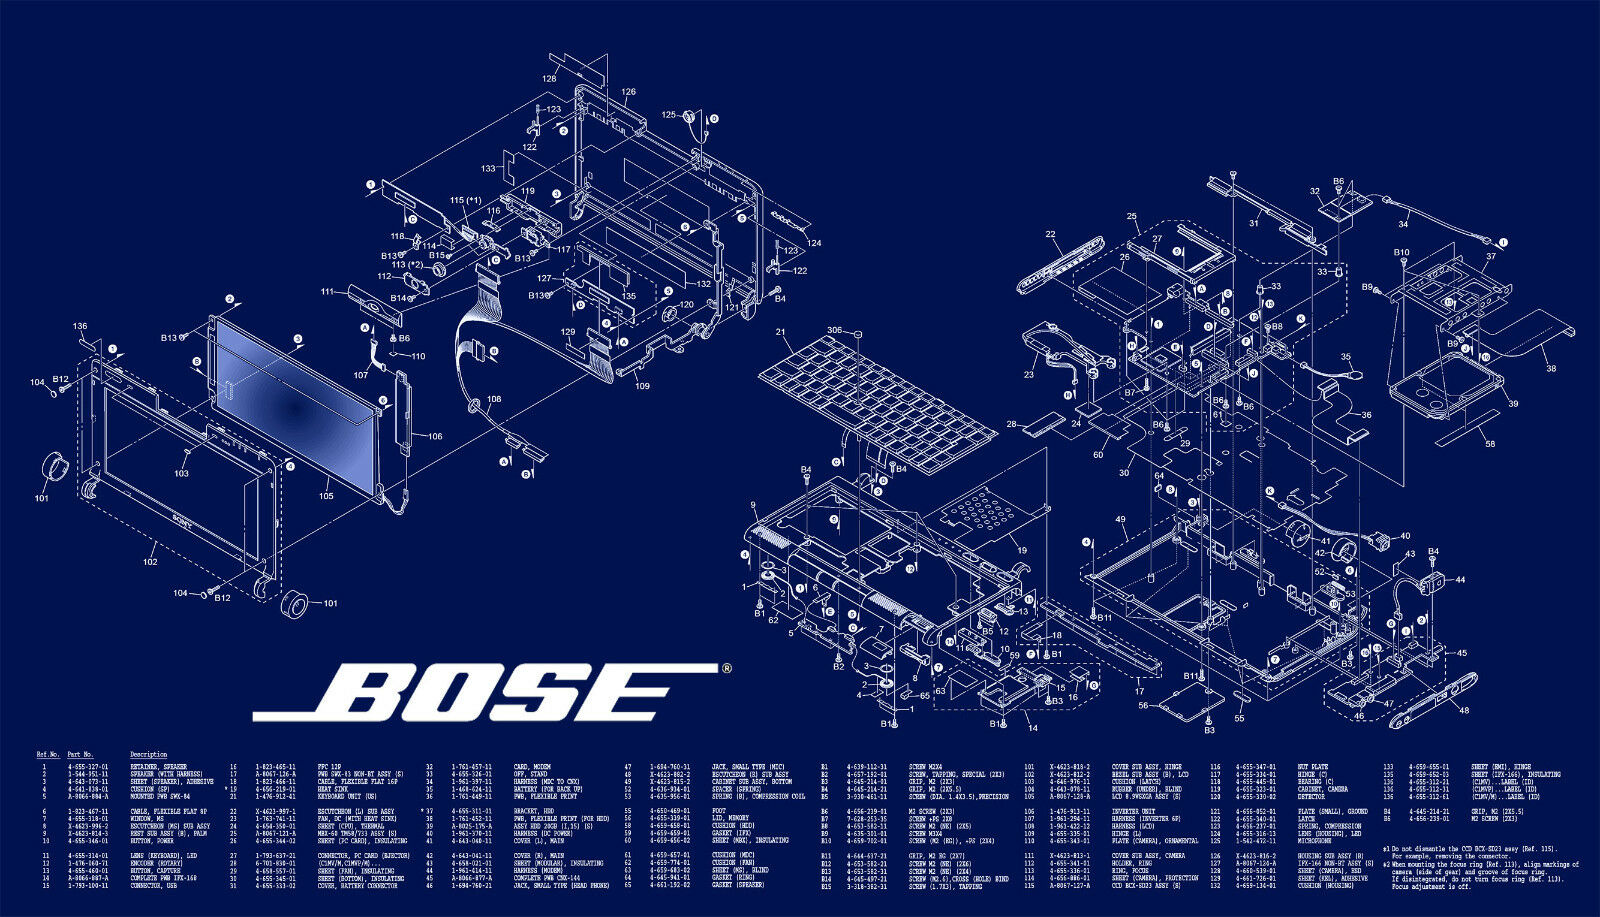 Comprehensive Bose Service User Manuals And Schematics Eur 781 901 Iv Speaker Wiring Diagram 1 Di 1spedizione Gratuita